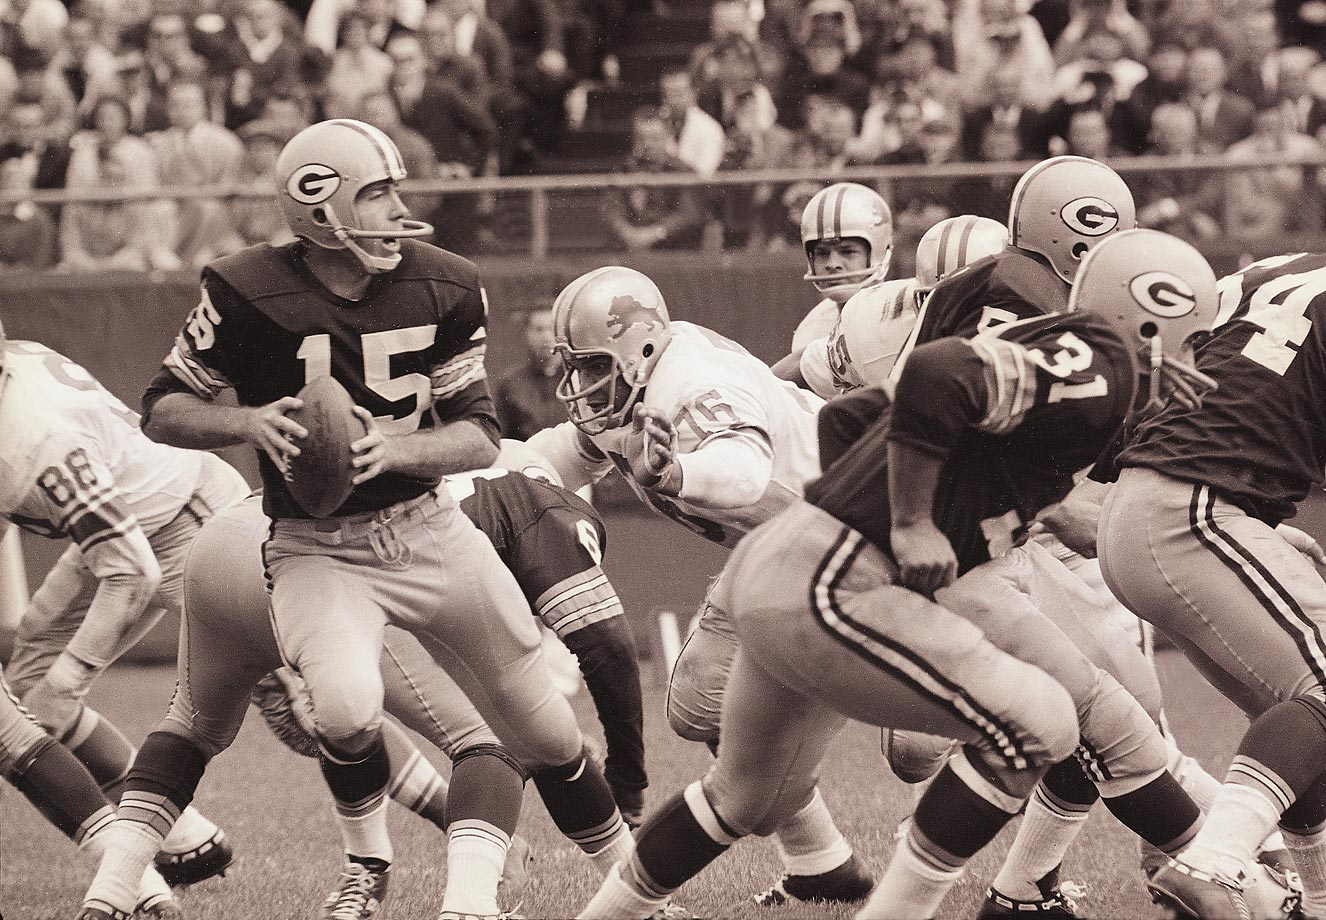 Over the course of Bart Starr's 10 years in the NFL, the league had 72 ties, including this one between the Packers and the Lions that ended 13-13. Due to a rule change, since 1974 there have only been 20 ties. And, until 1972, tie games weren't counted in the standings. (Text credit: Shannon Carroll)